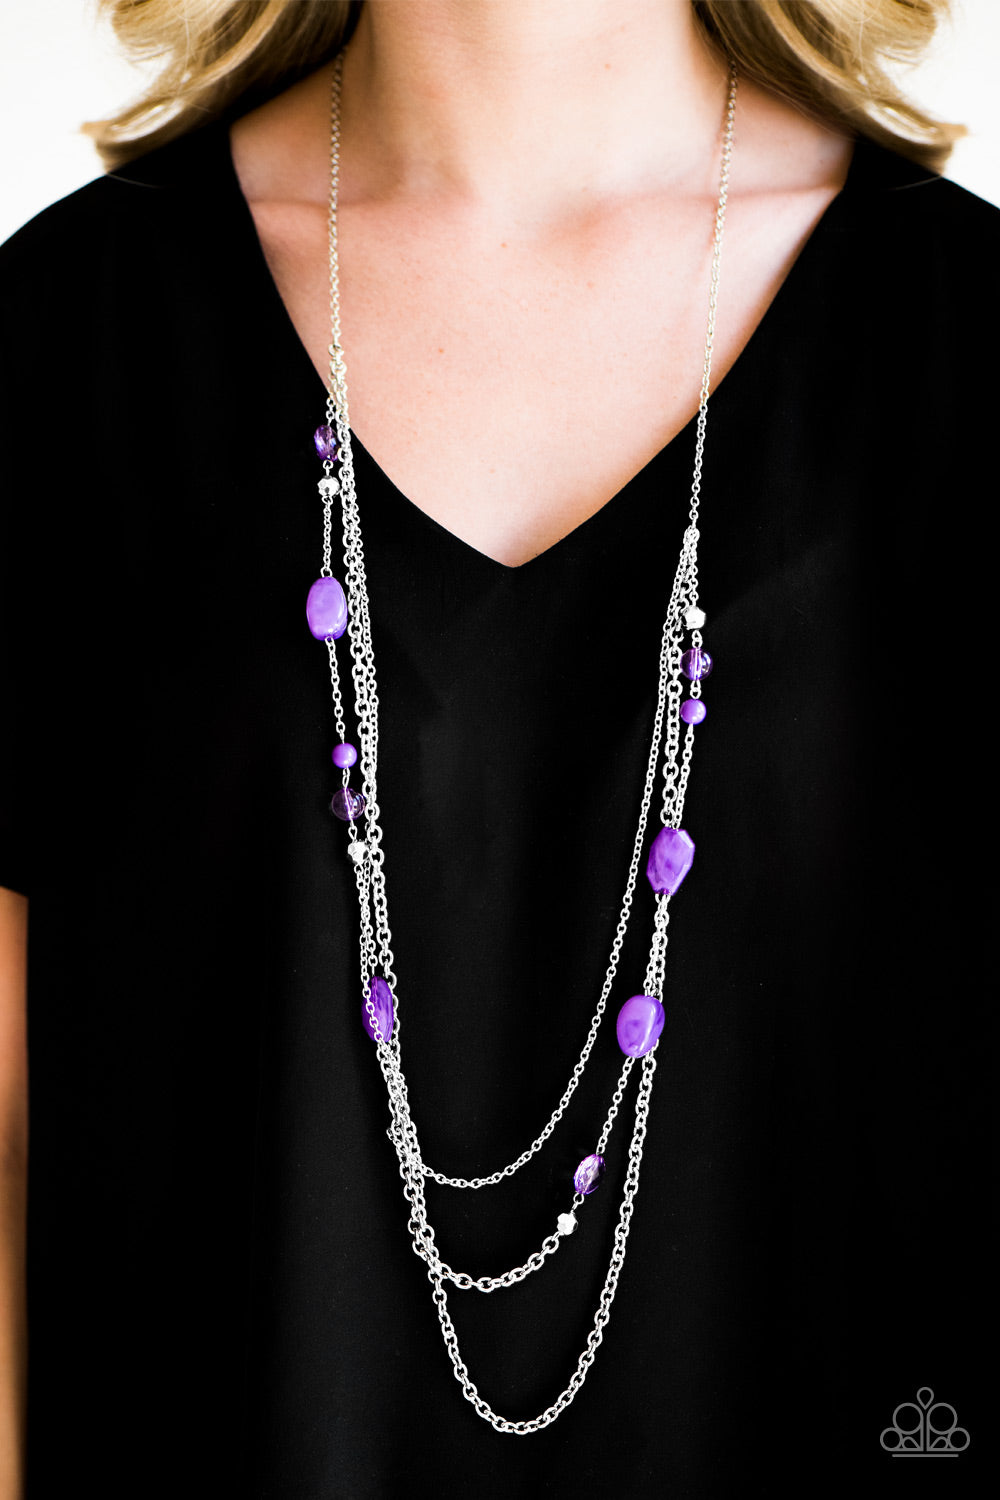 BELIZE It Or Not - Purple Necklace - Paparazzi Accessories